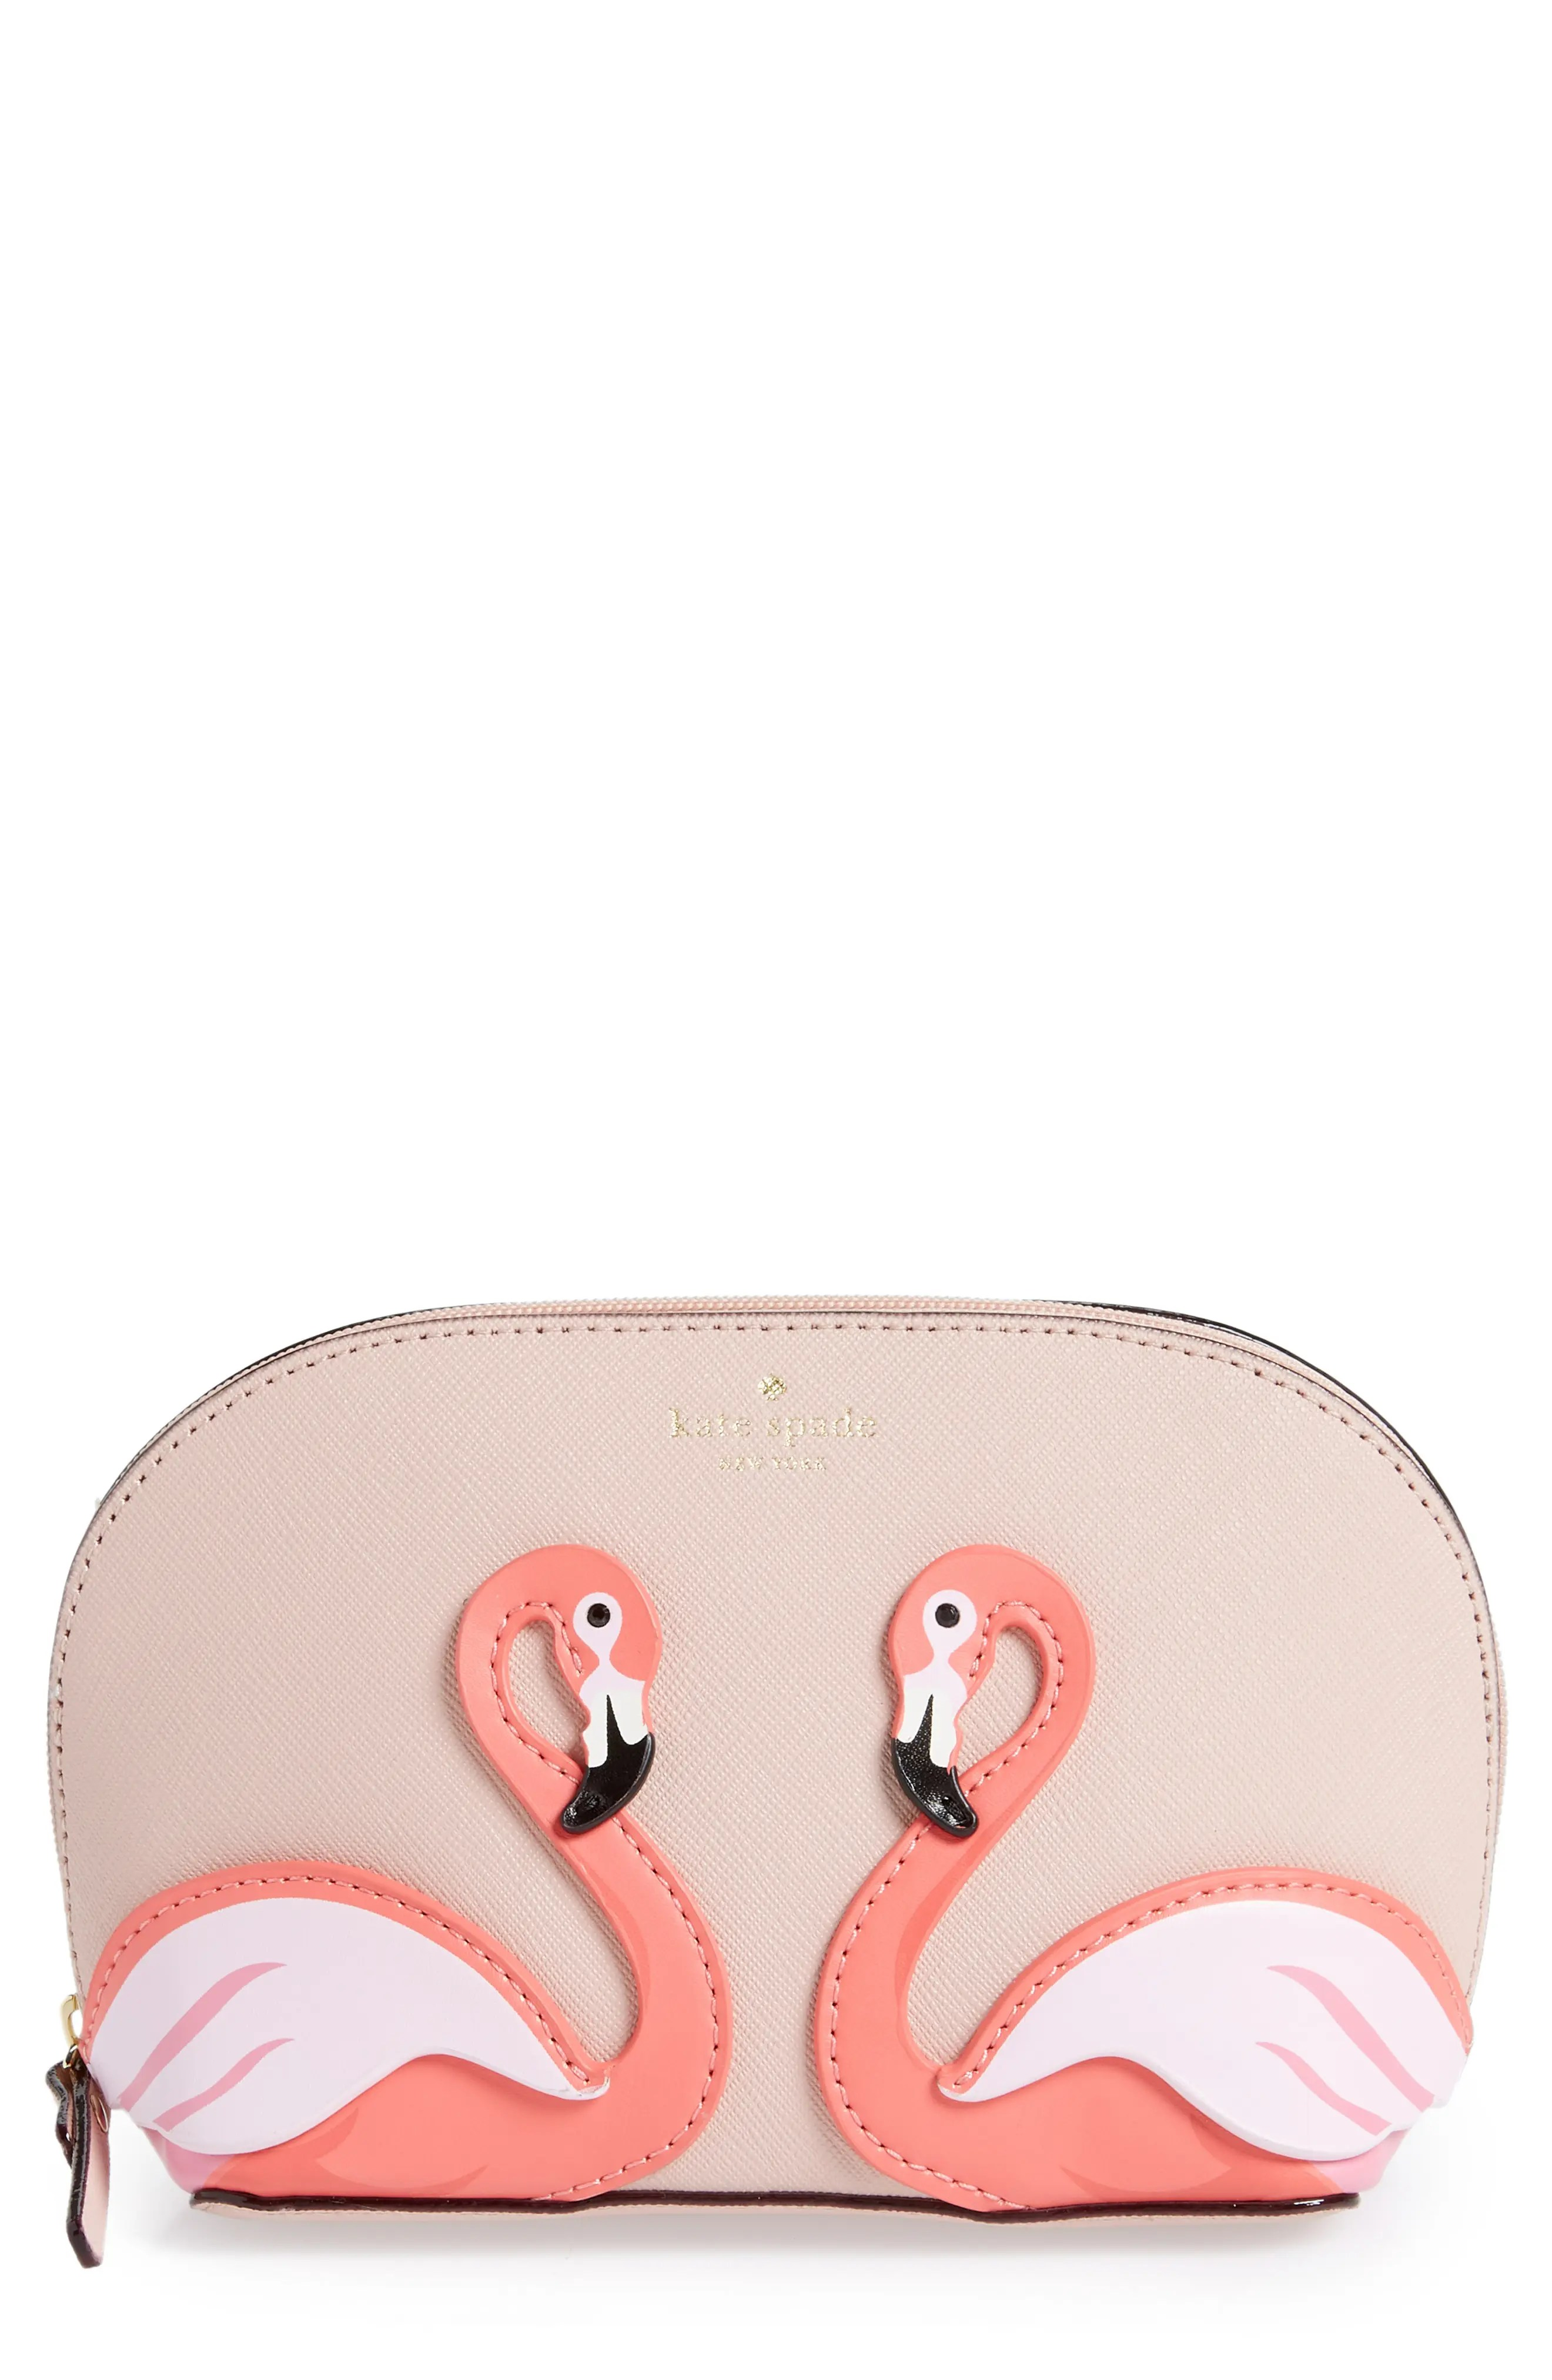 By The Pool Flamingo Kate Spade Kate Spade New York By The Pool Flamingo Small Abalene Leather